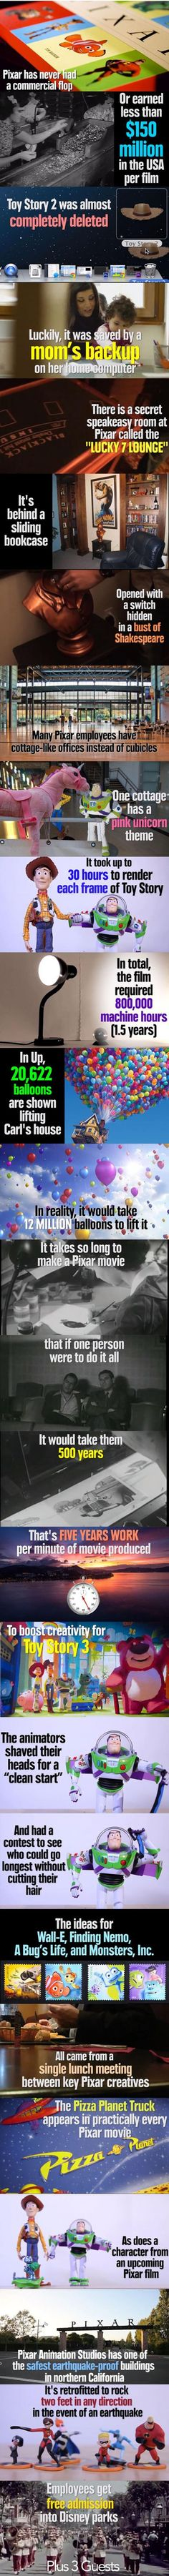 Facts about Pixar. Disney<3